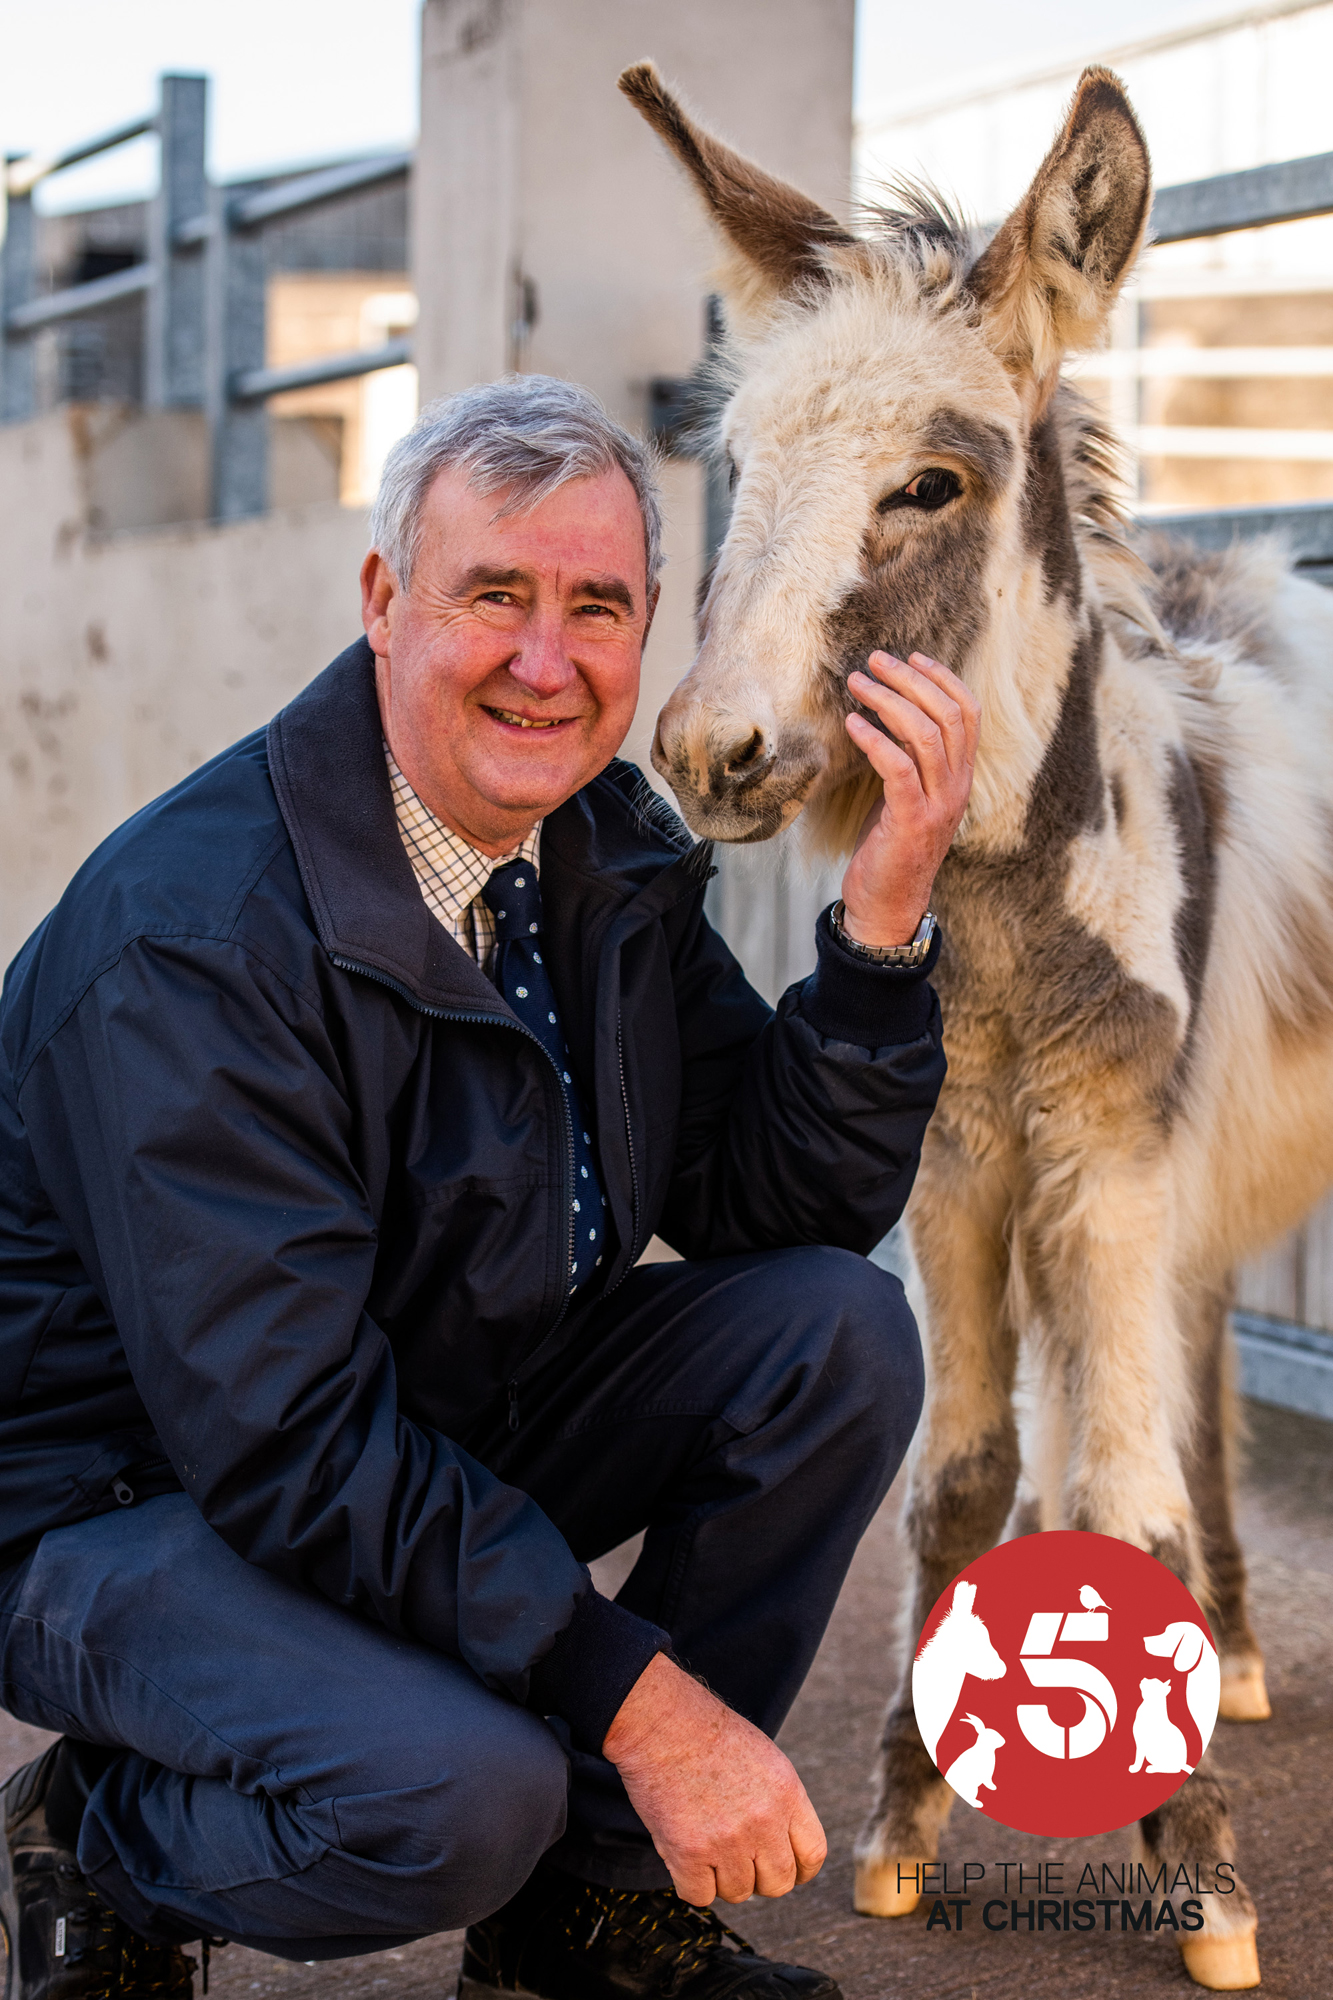 Channel 5 Launches Help The Animals At Christmas The Nen North